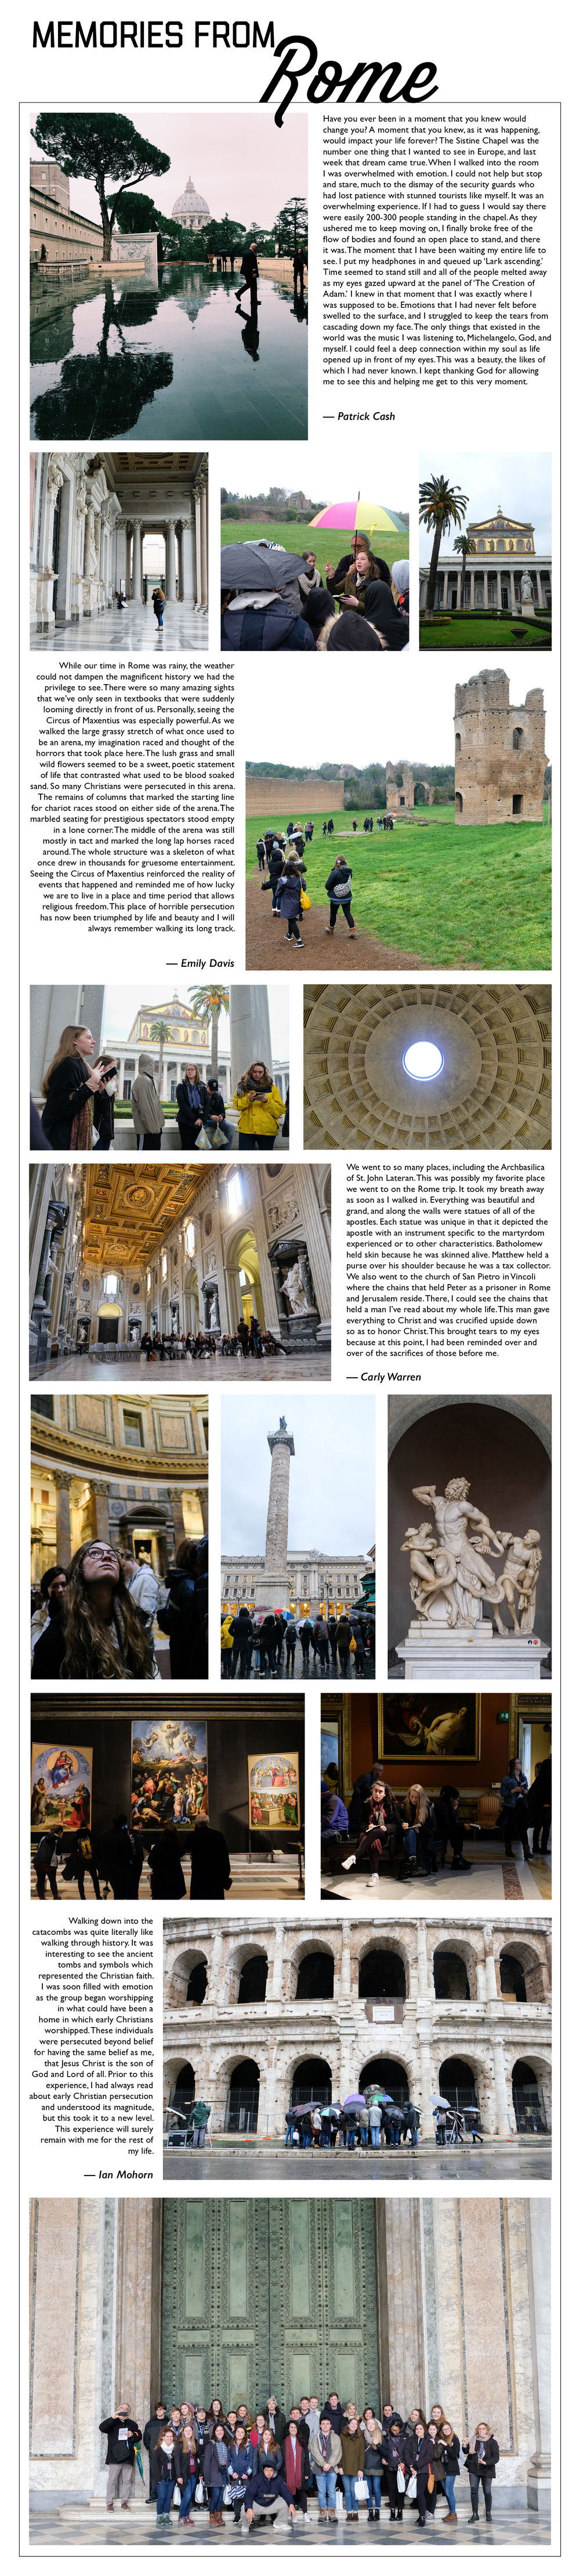 RomeCollageSp18.jpg